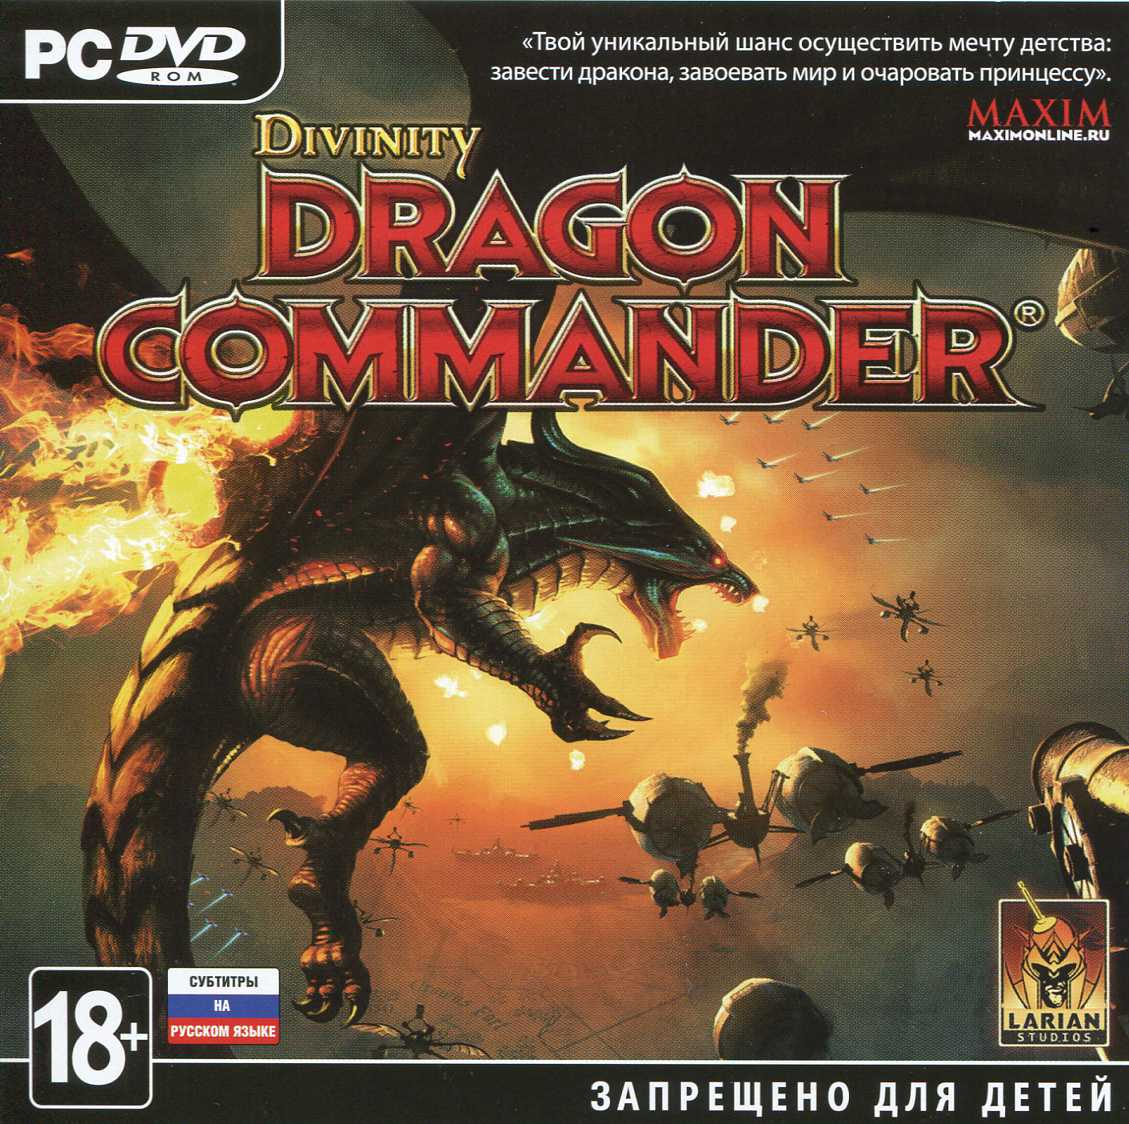 Divinity: Dragon Commander (Ключ активации в Steam)